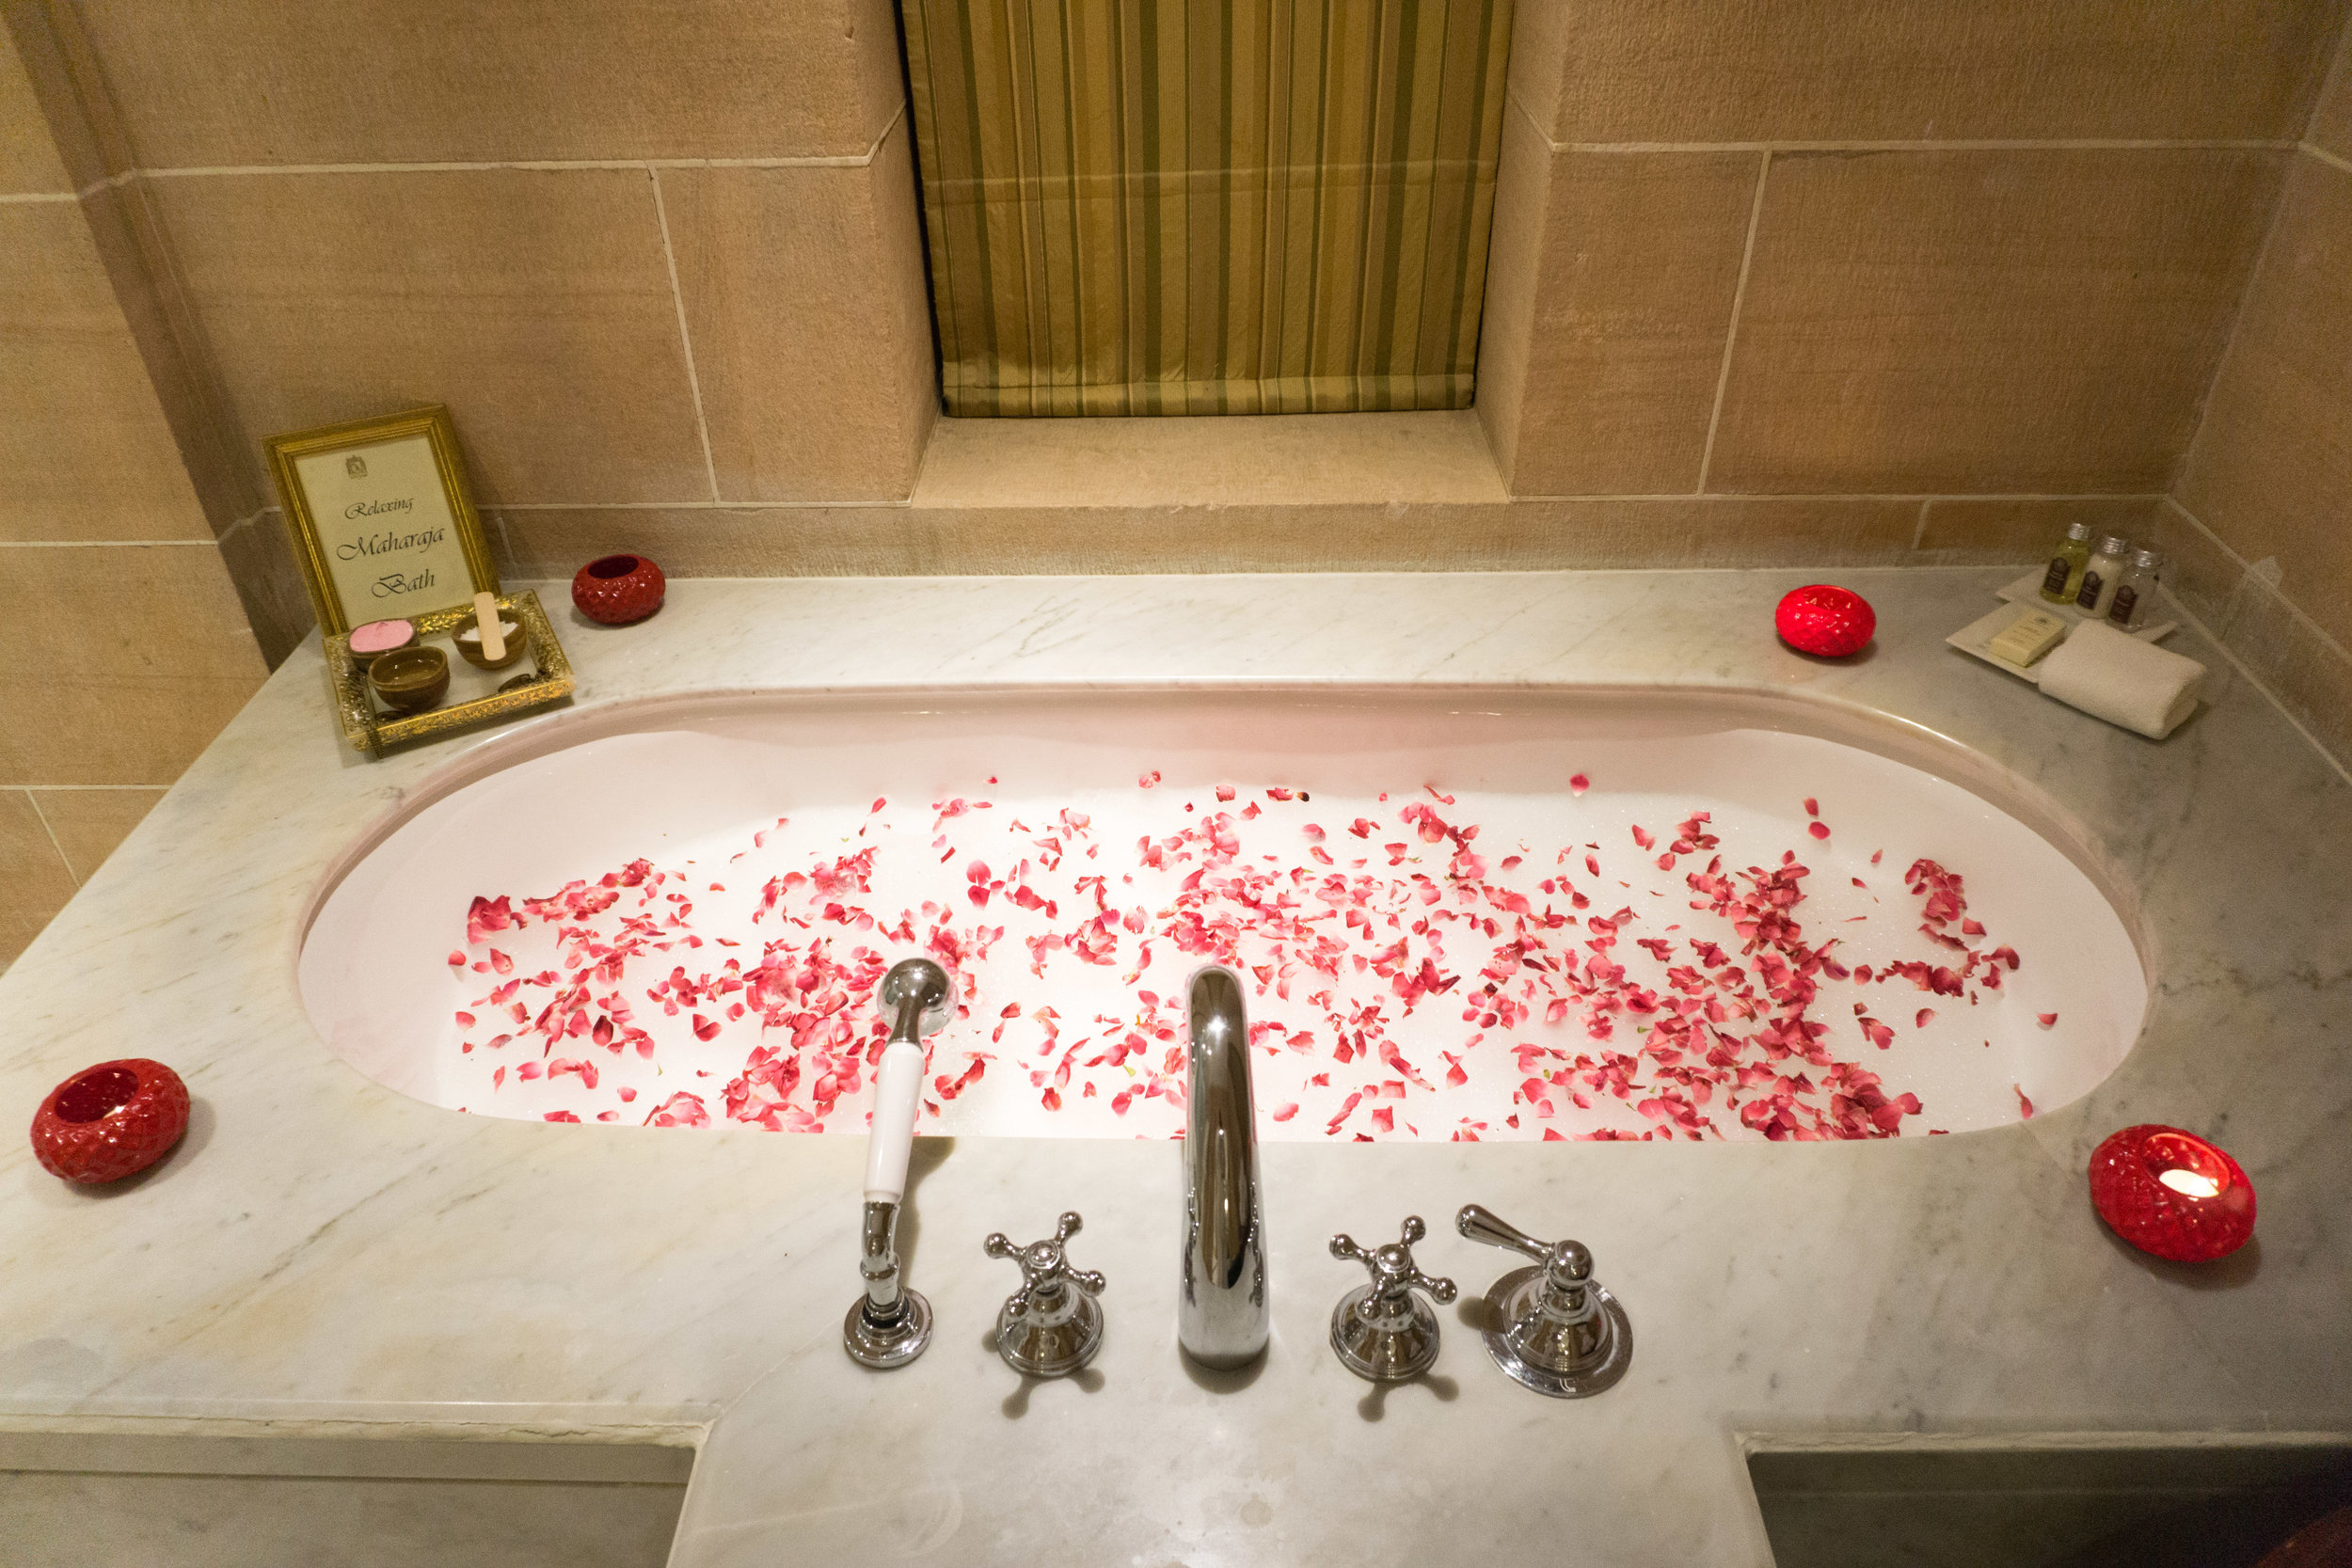 Turndown service - rose petals in the tub